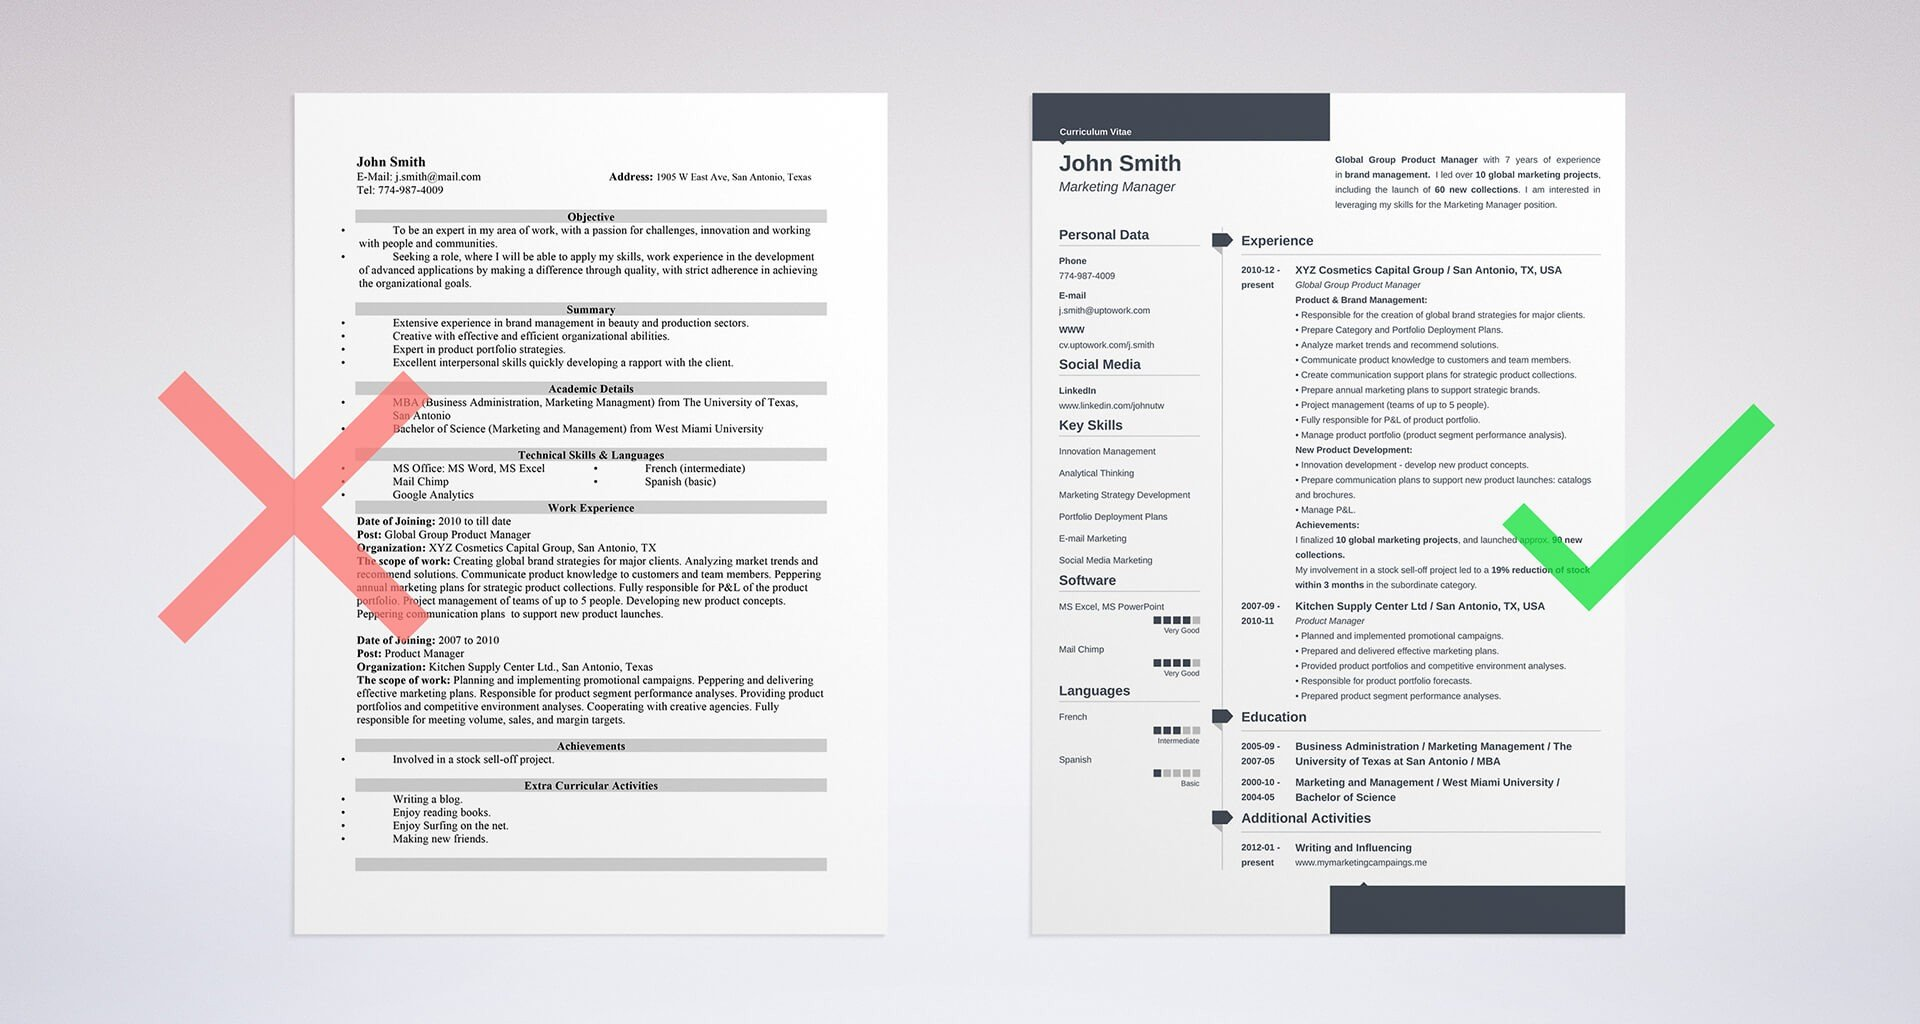 resume template from our resume builder - create your resume here.